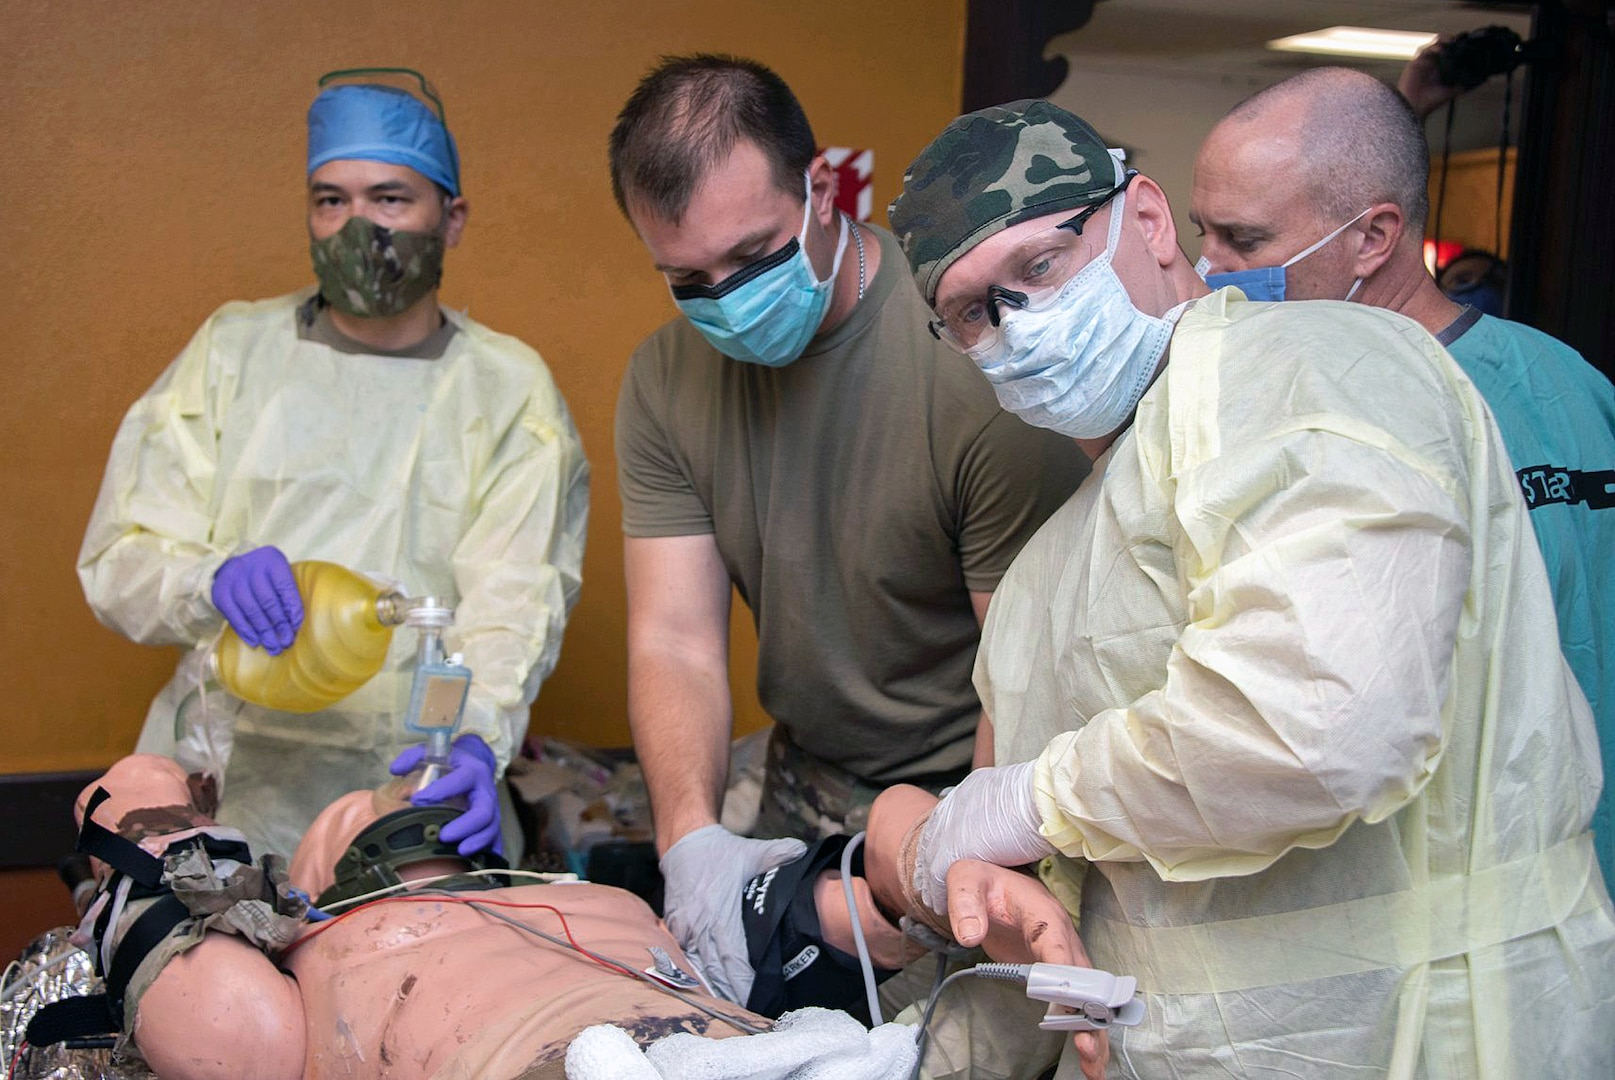 Members of the 555th Forward Surgical Team assess a simulated patient during training with Brooke Army Medical Center's Strategic Trauma Readiness Center of San or STaRC, at Joint Base San Antonio-Camp Bullis May 26. The STaRC training program uses a combination of didactic and hands-on learning to prepare the 555th for deployment.